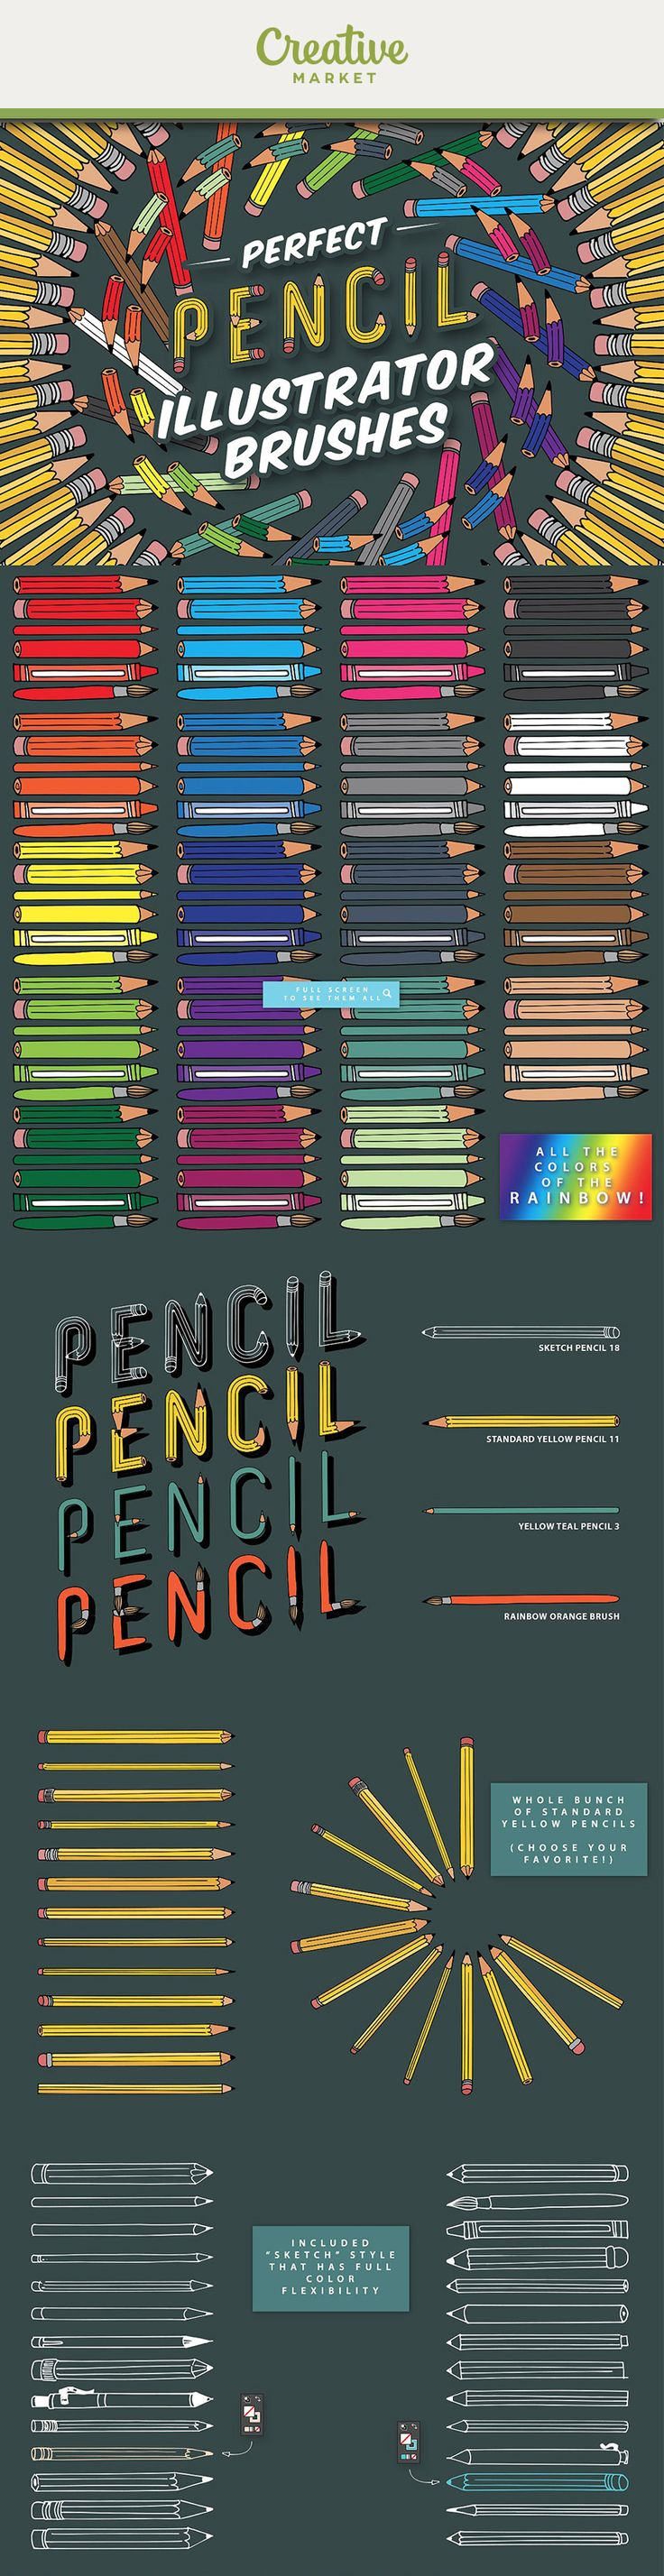 Ad: You've got a collection of colors, shapes, and types.Plenty of color, stars, and dancing pieces of paper. 150+ different brushes for Adobe Illustrator. Rainbow collection of pencils, crayons, and paintbrushes. Reactive stroke color versions (choose the right color for your design). Extras! hand drawn arrows and lines. Get it now on Creative Market